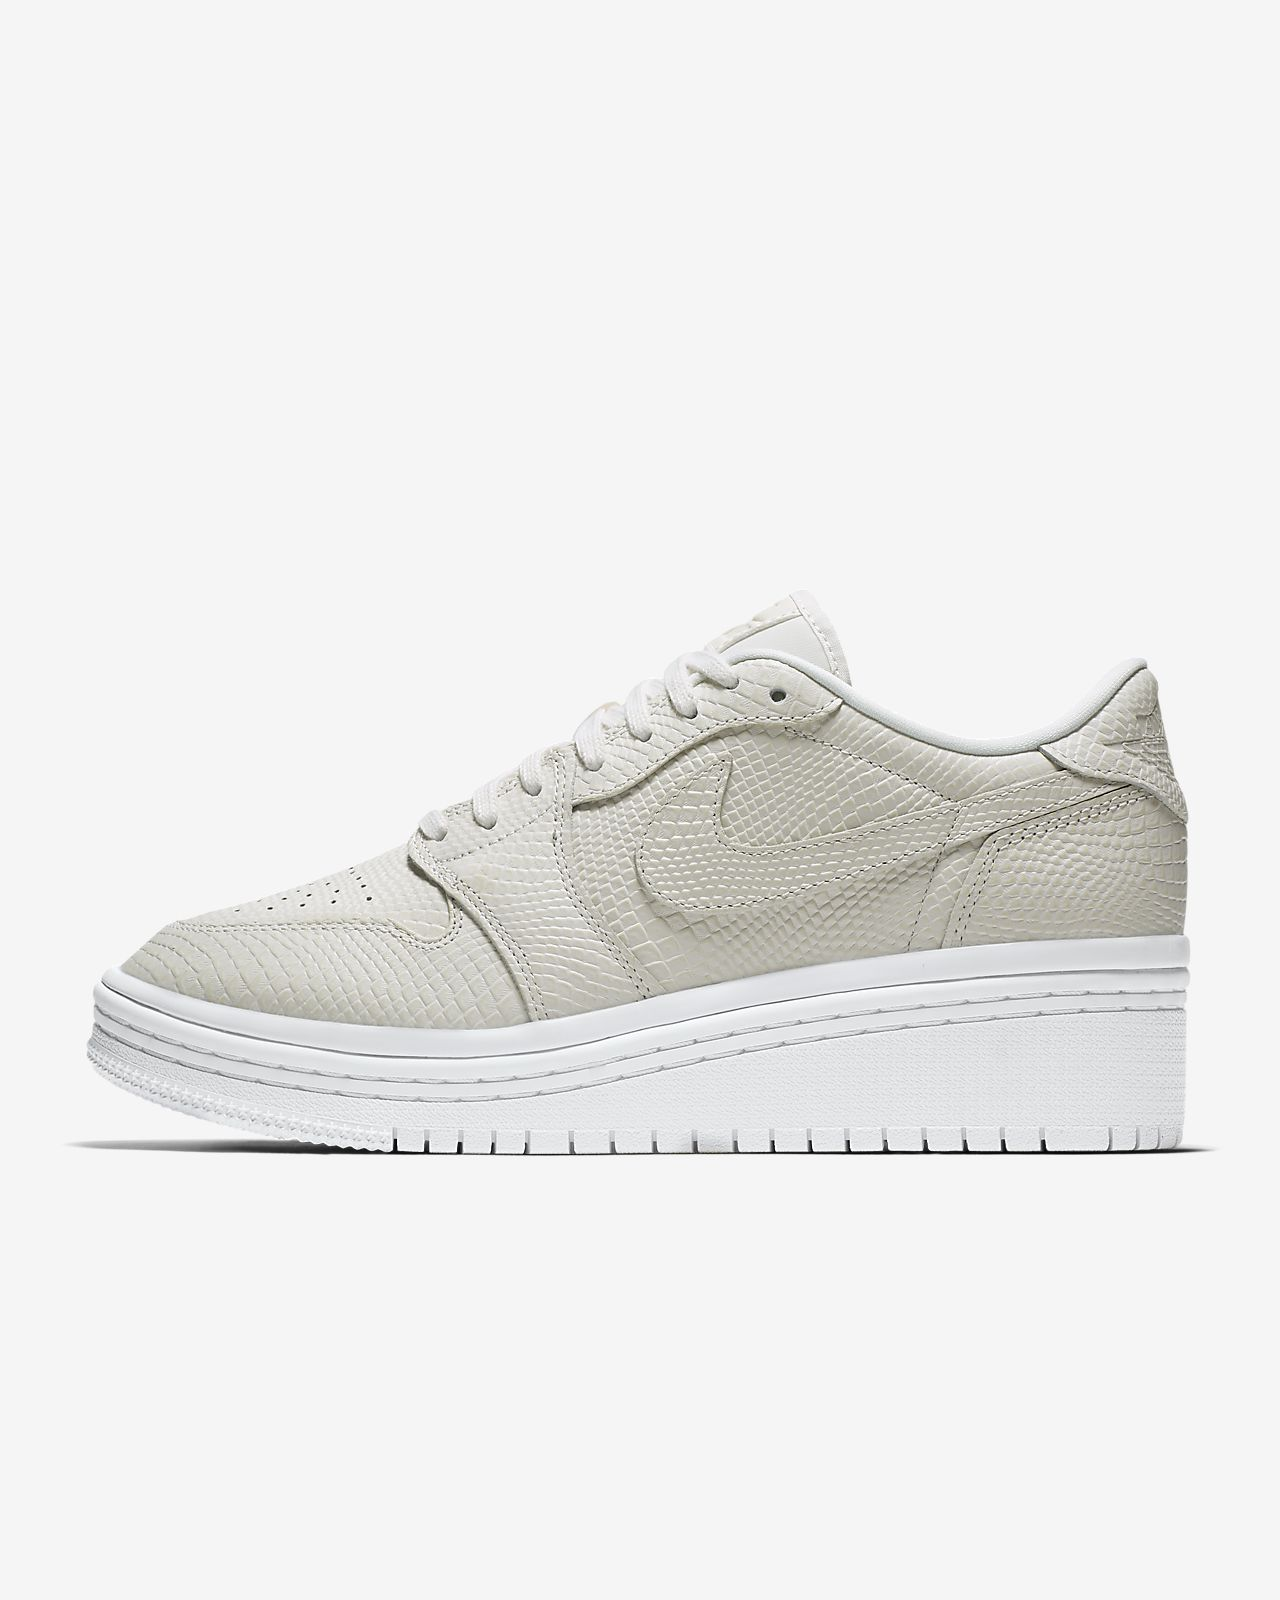 24561aa74489ee Air Jordan 1 Retro Low Lifted Women s Shoe. Nike.com ID